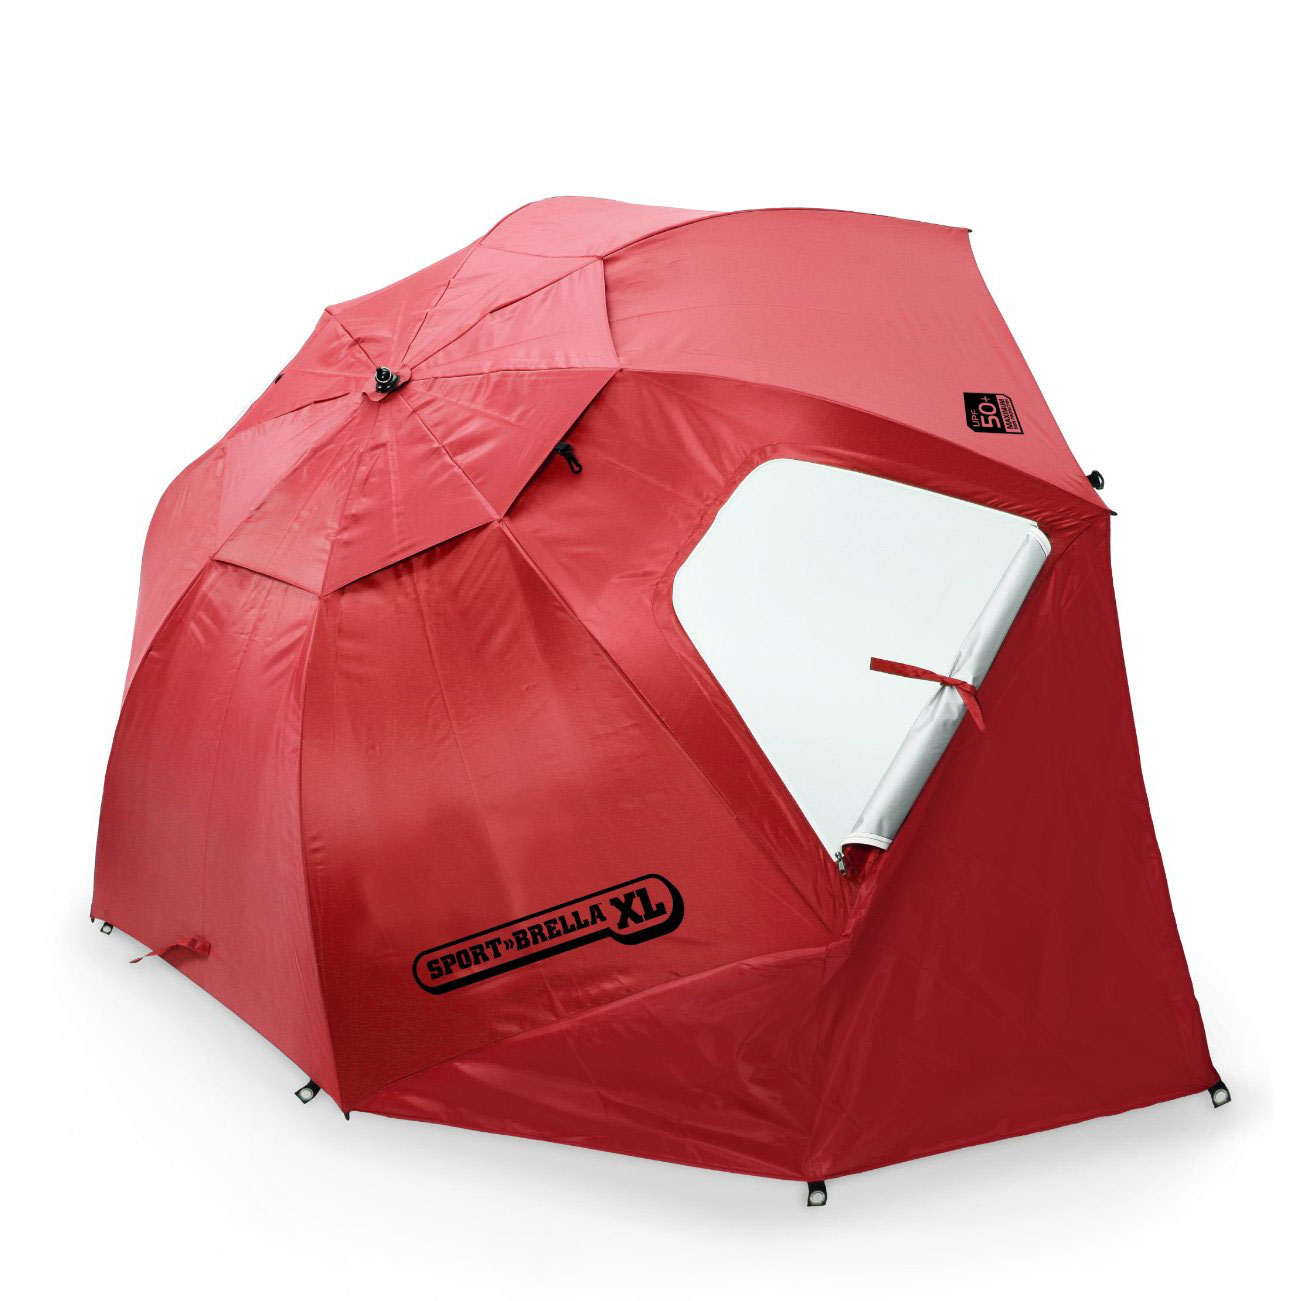 Sport-Brella XL Sun Shelter Beach Umbrella